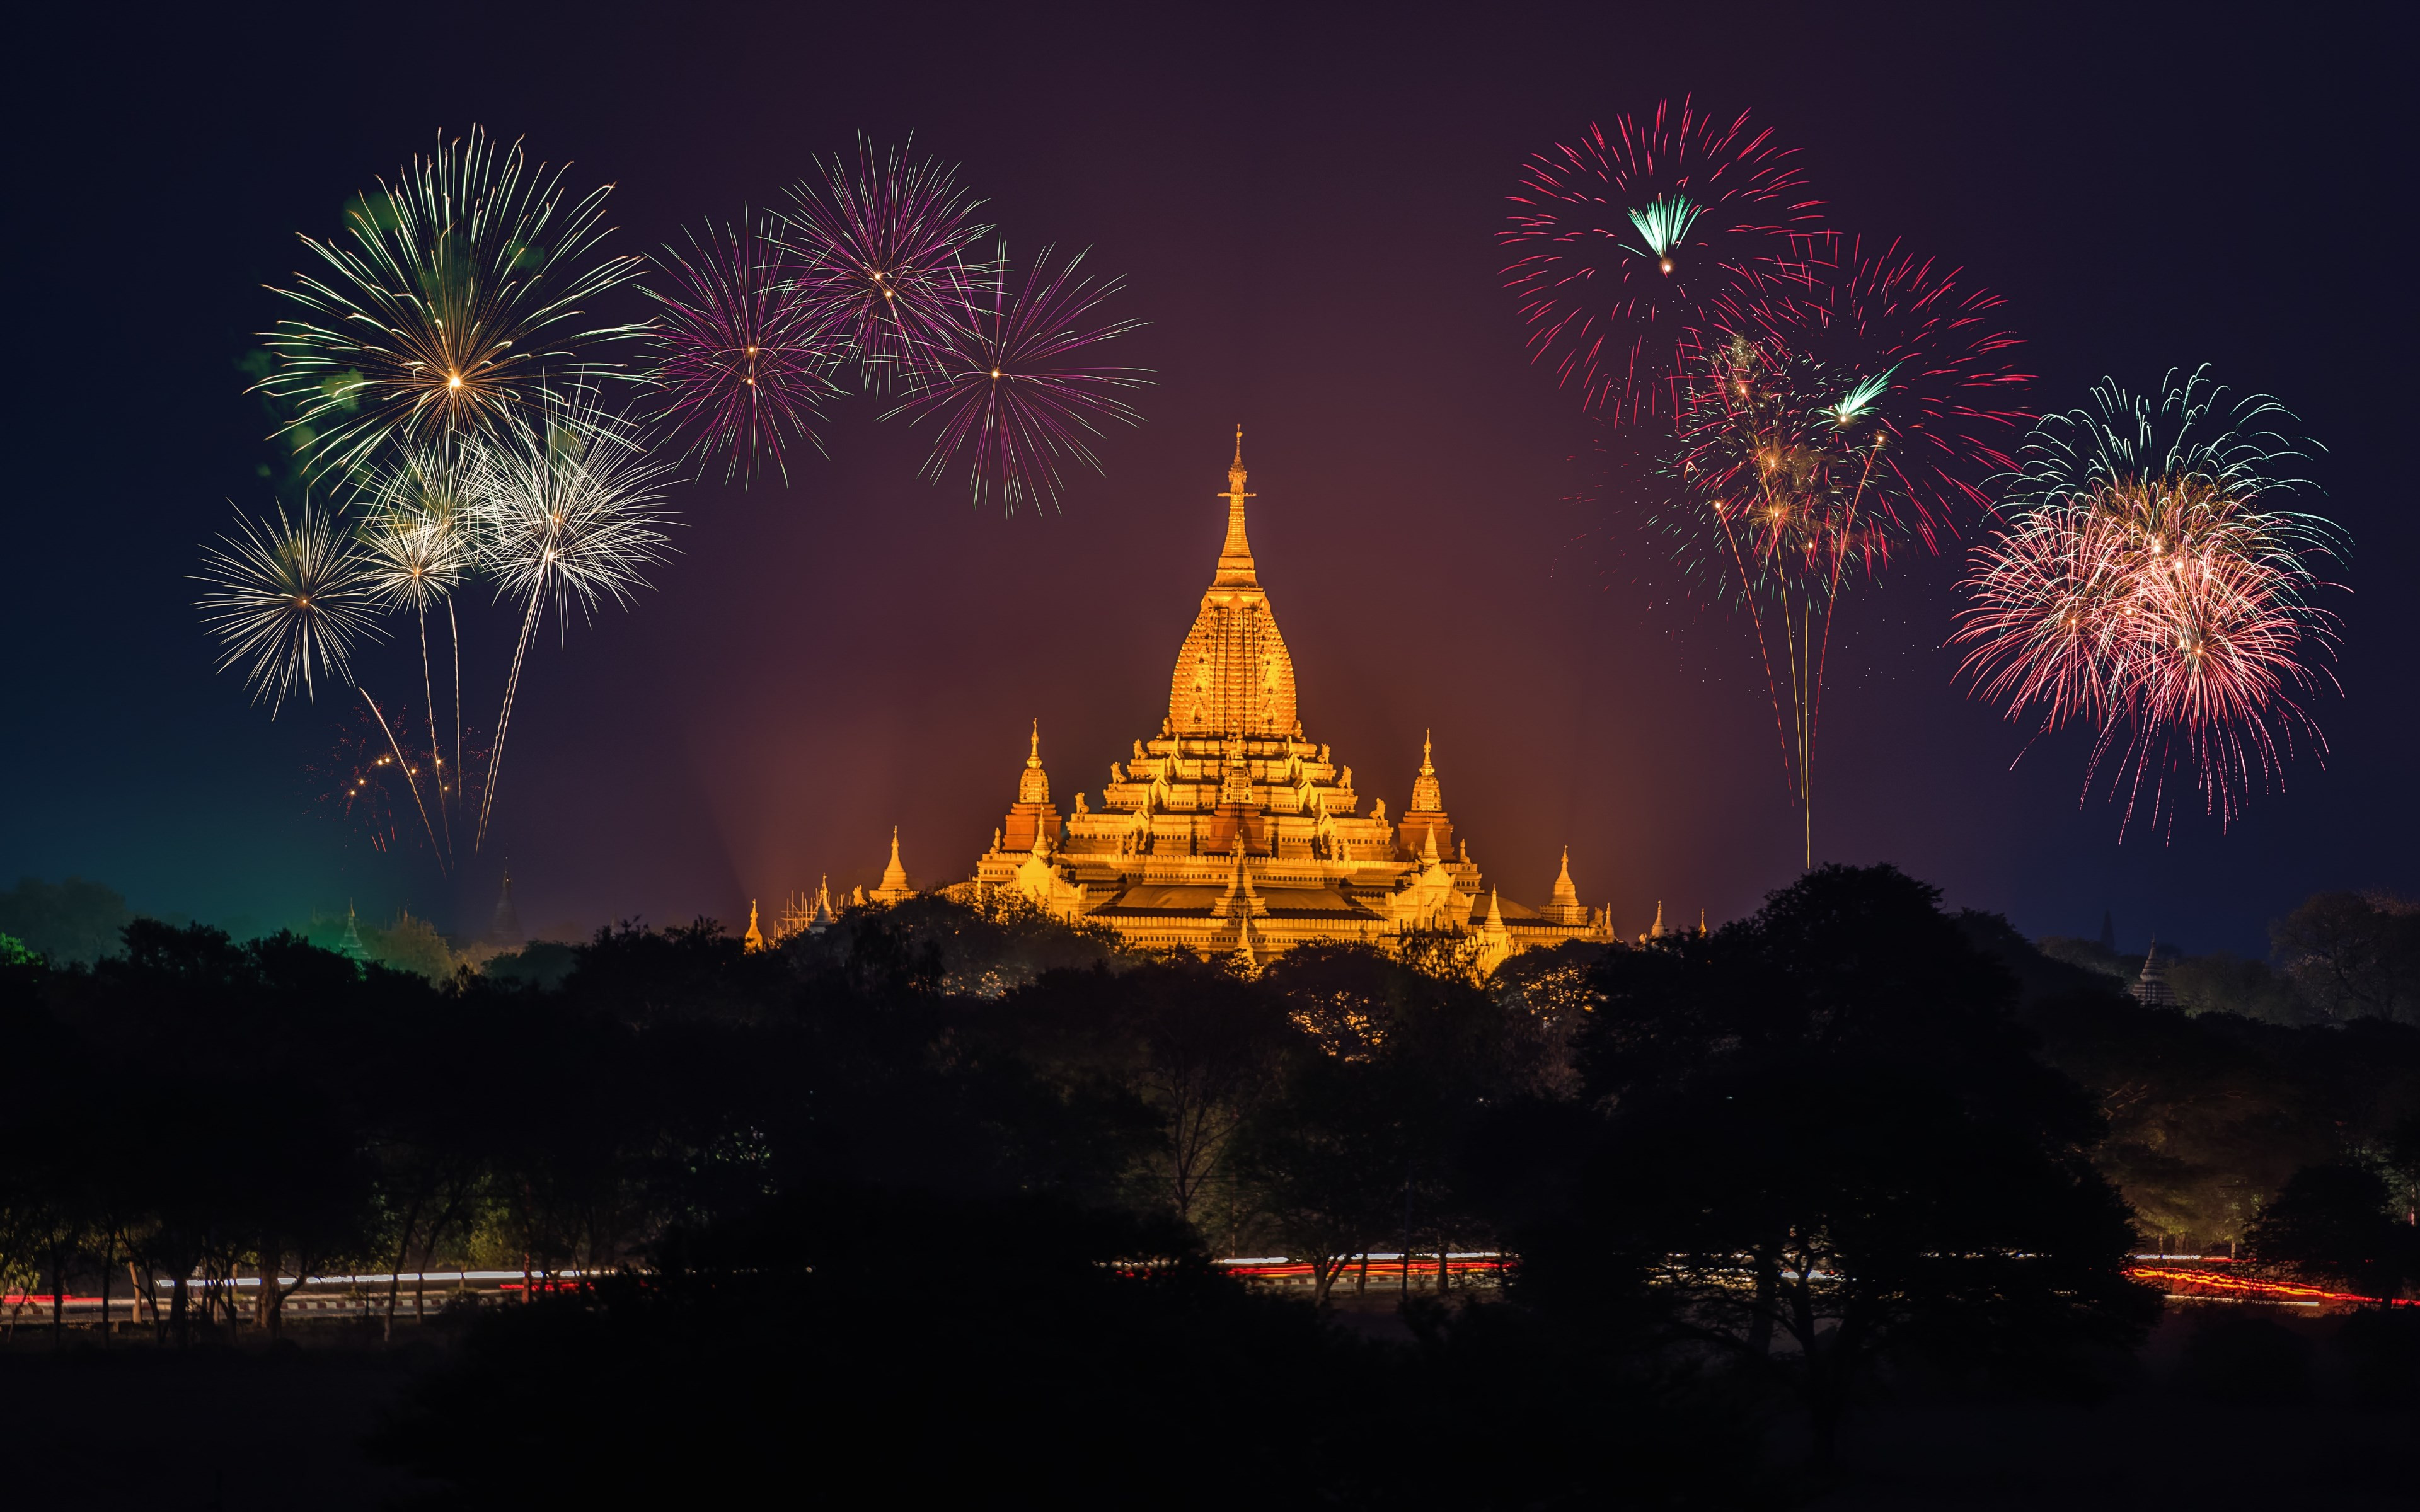 Fireworks above Ananda Phato temple | 3840x2400 wallpaper